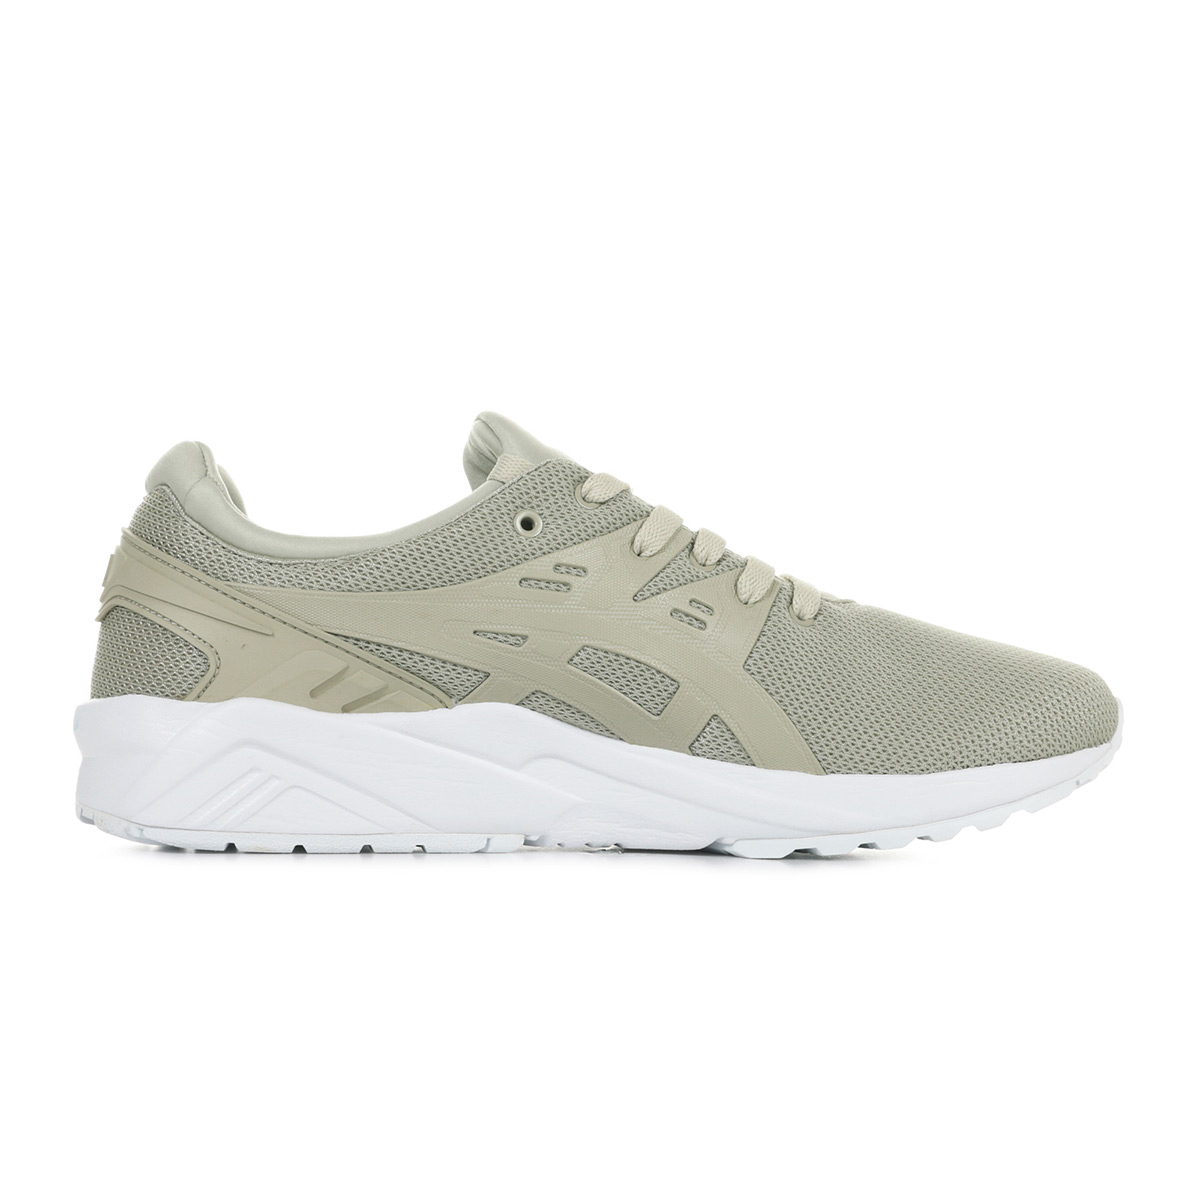 000cd4d3169 Chaussures Baskets Asics homme Gel Kayano Trainer Evo